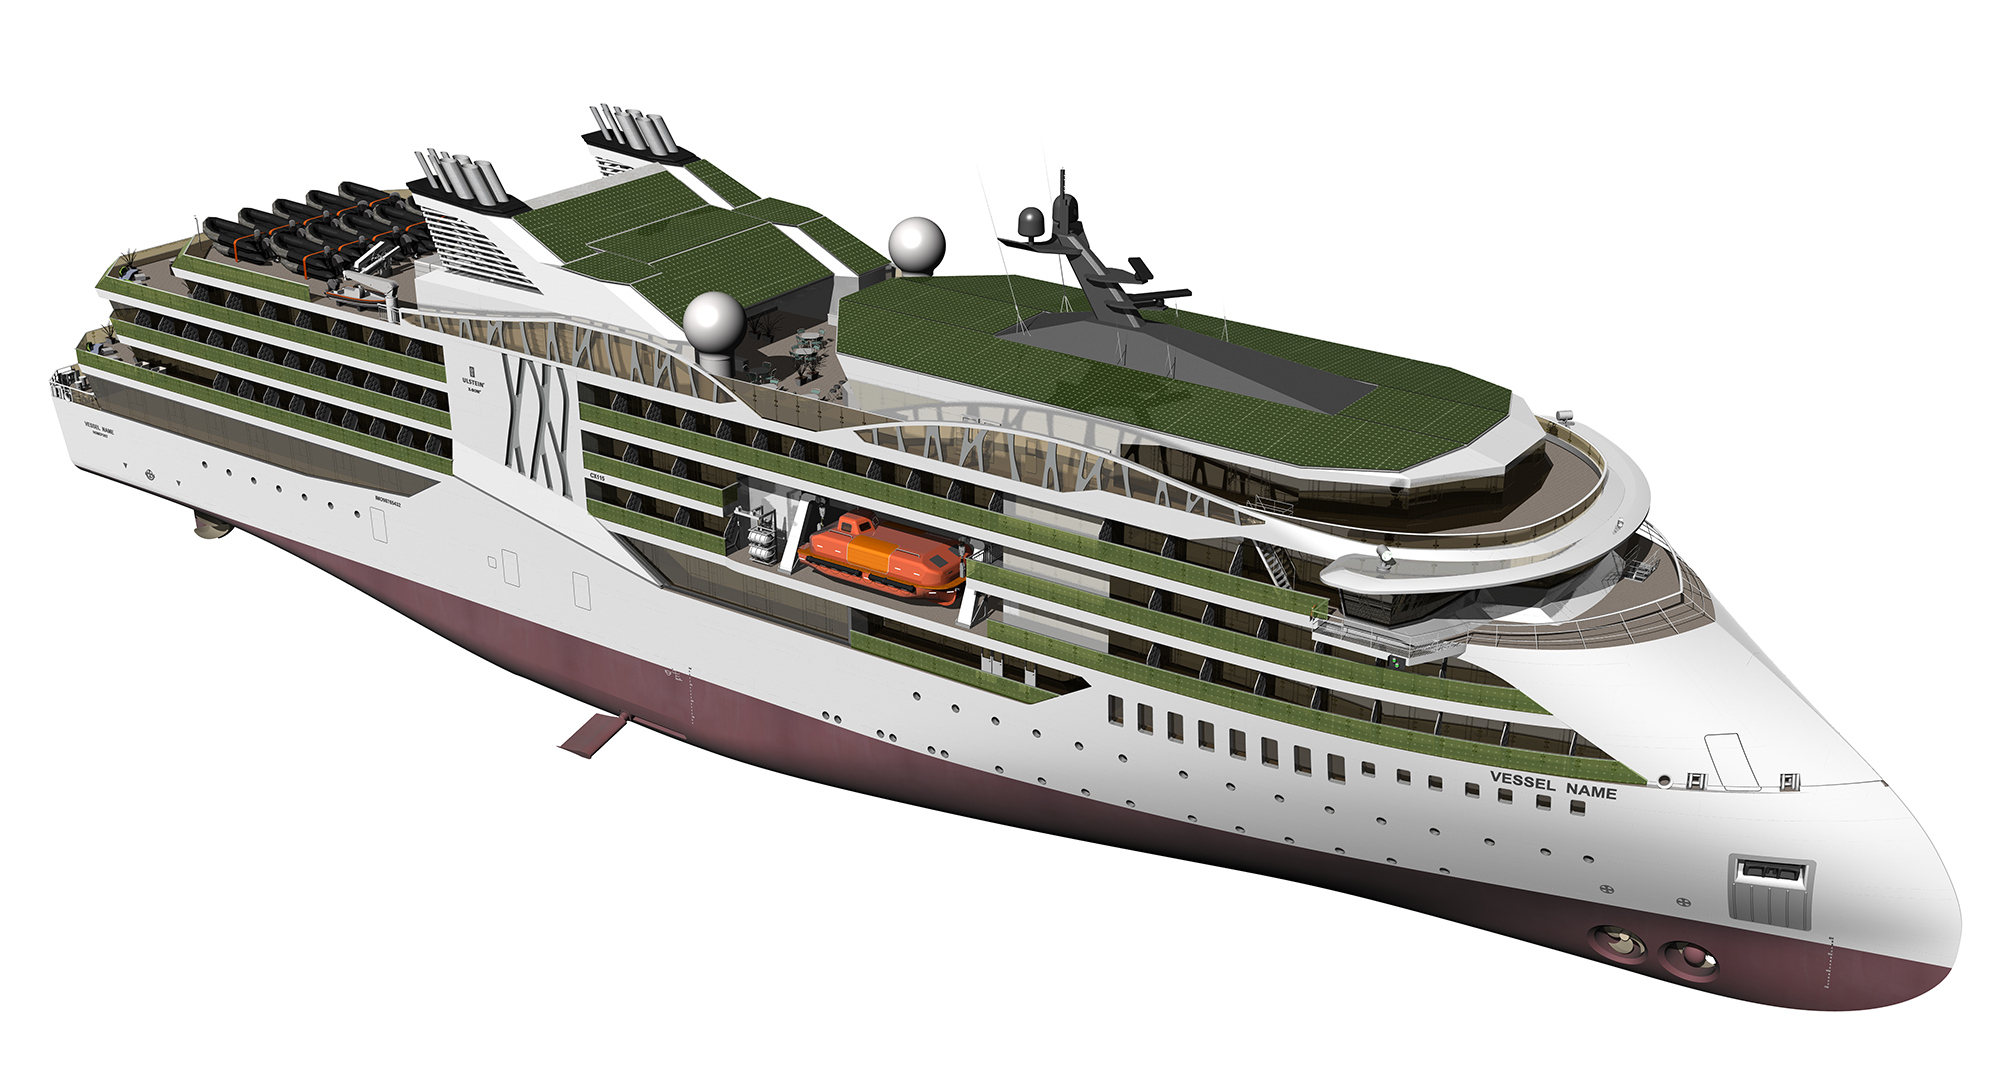 Example of solar panelling on an Ulstein cruise vessel design.